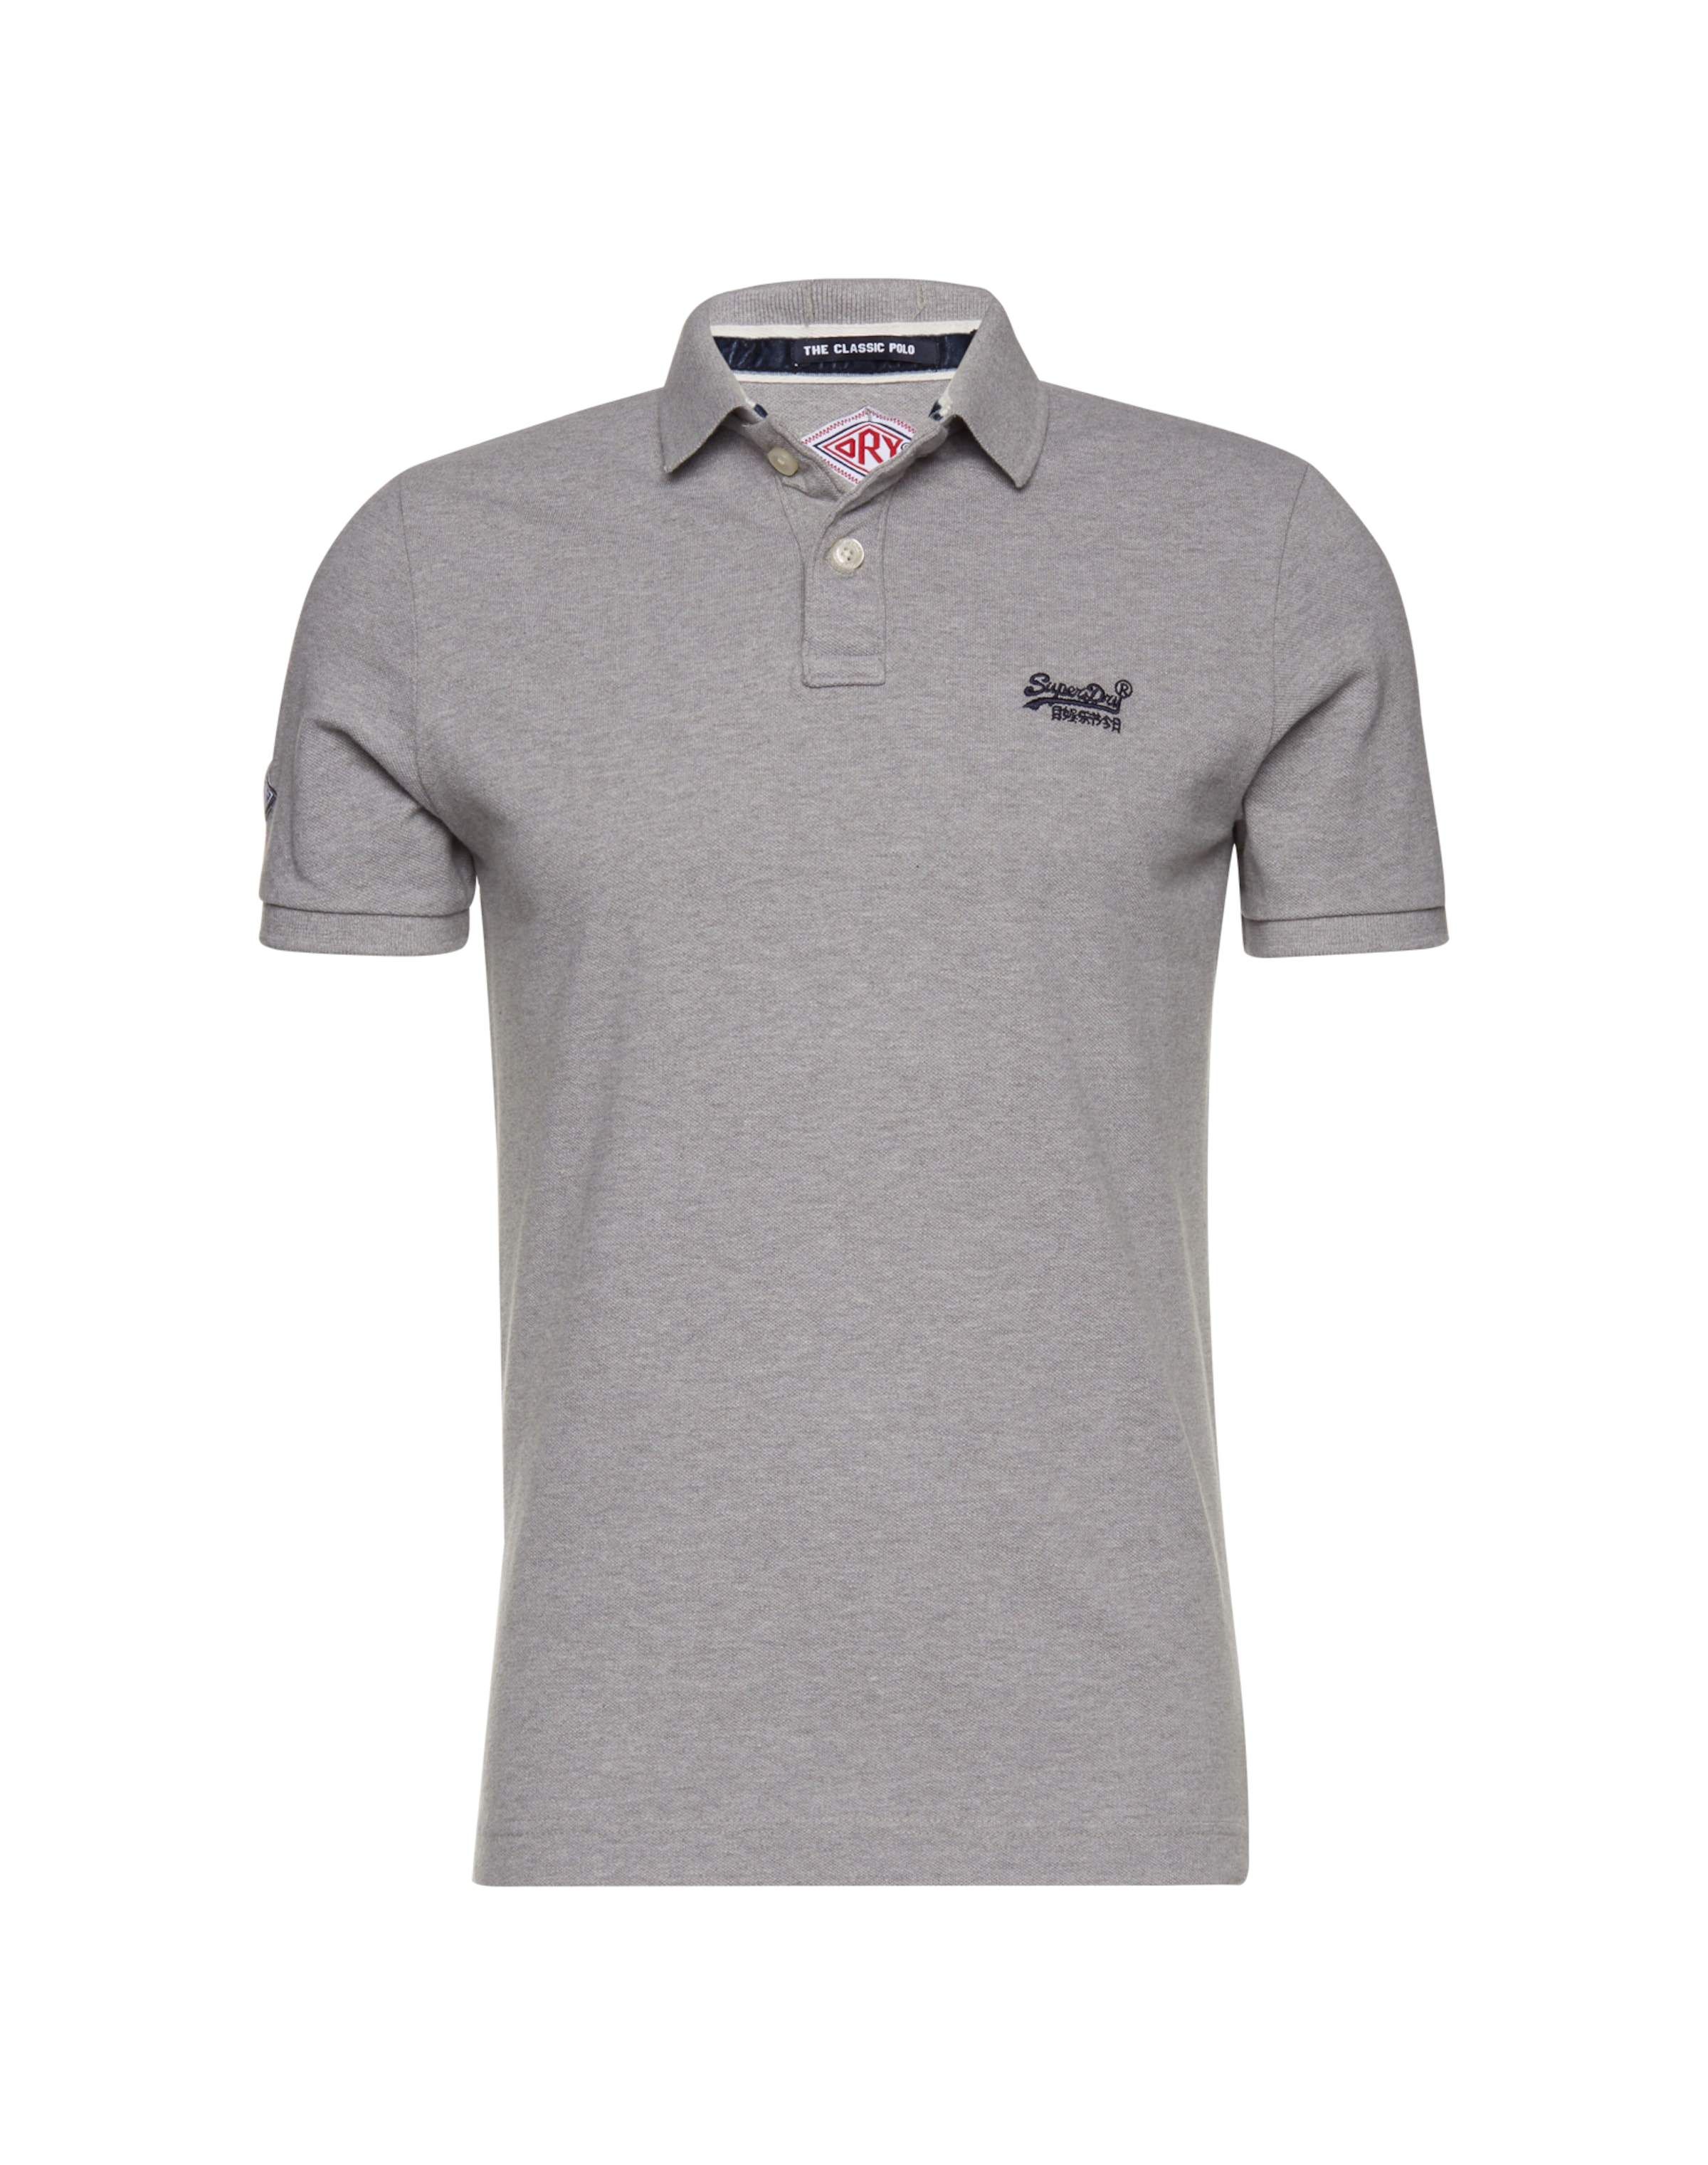 s Superdry Poloshirt Graumeliert Pique S 'classic Polo' In TJKF1c3l